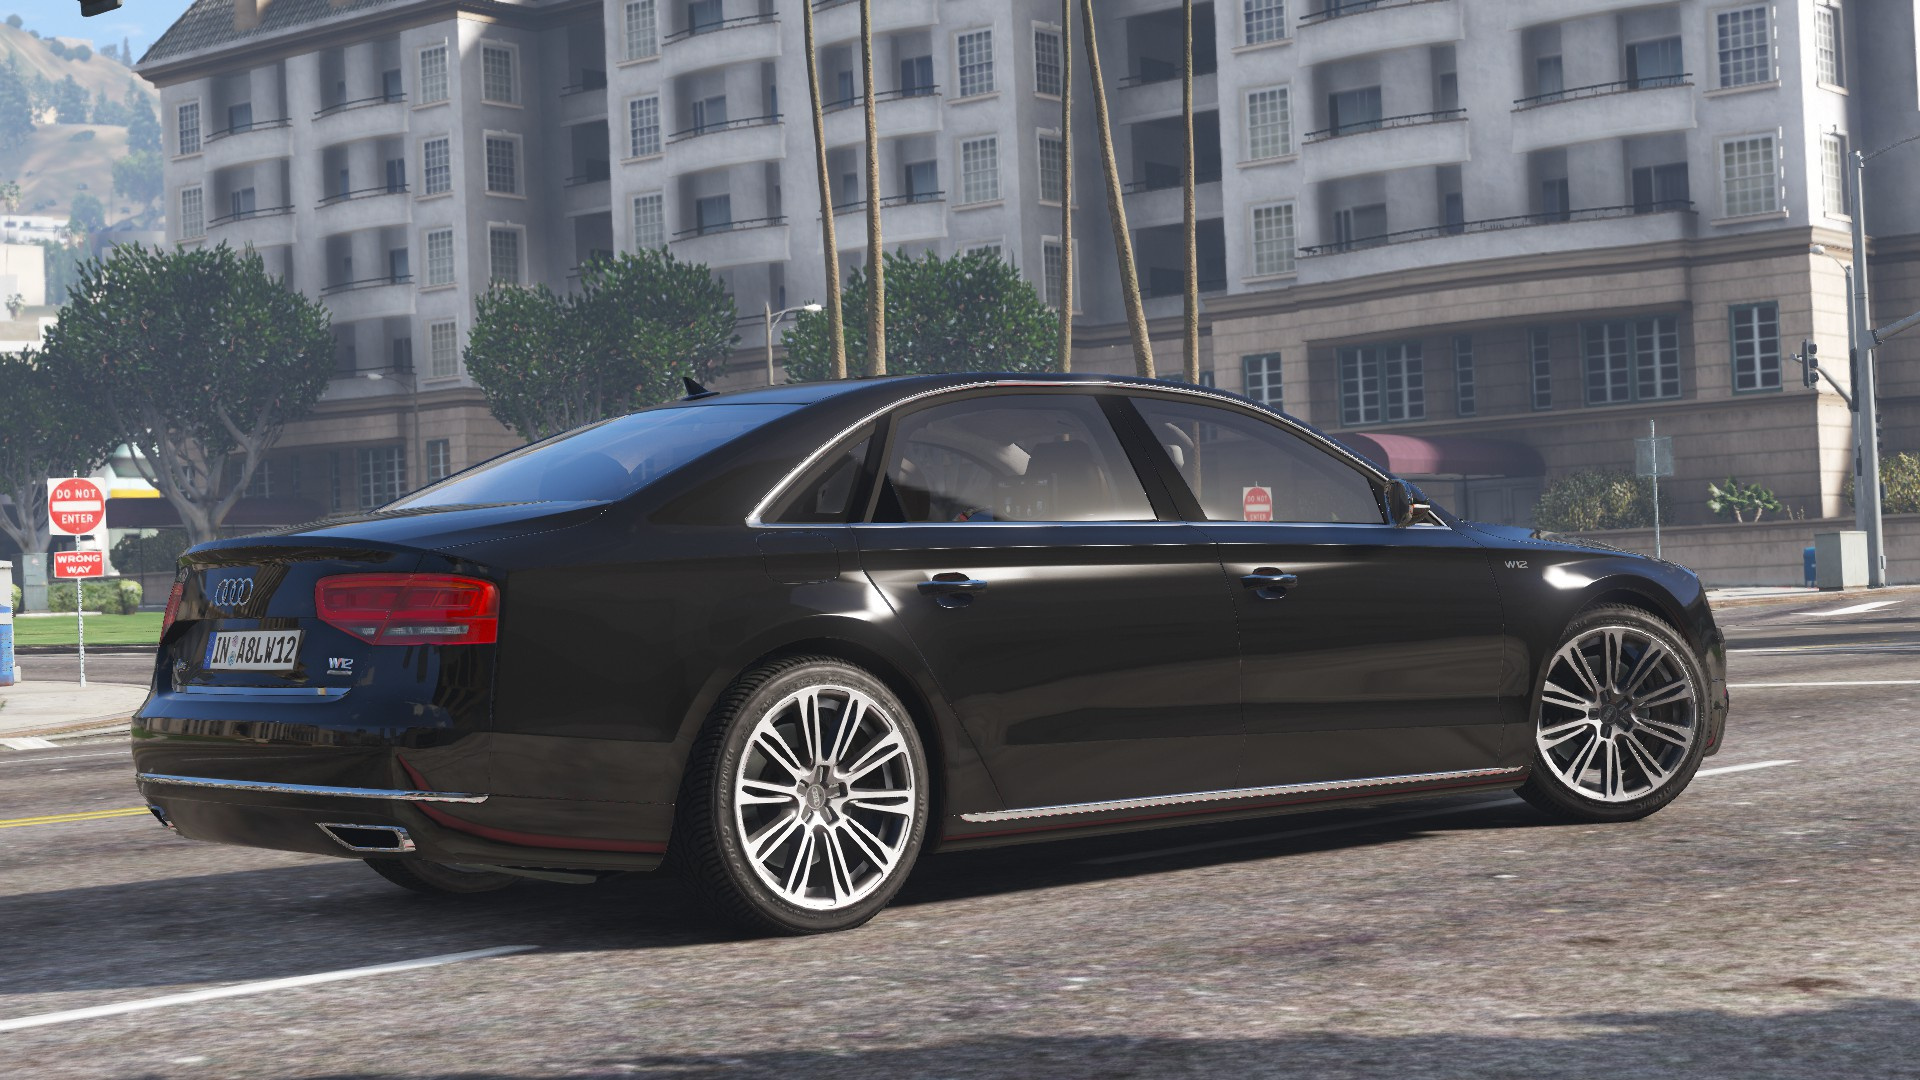 2010 audi a8 l w12 quattro add on gta5. Black Bedroom Furniture Sets. Home Design Ideas